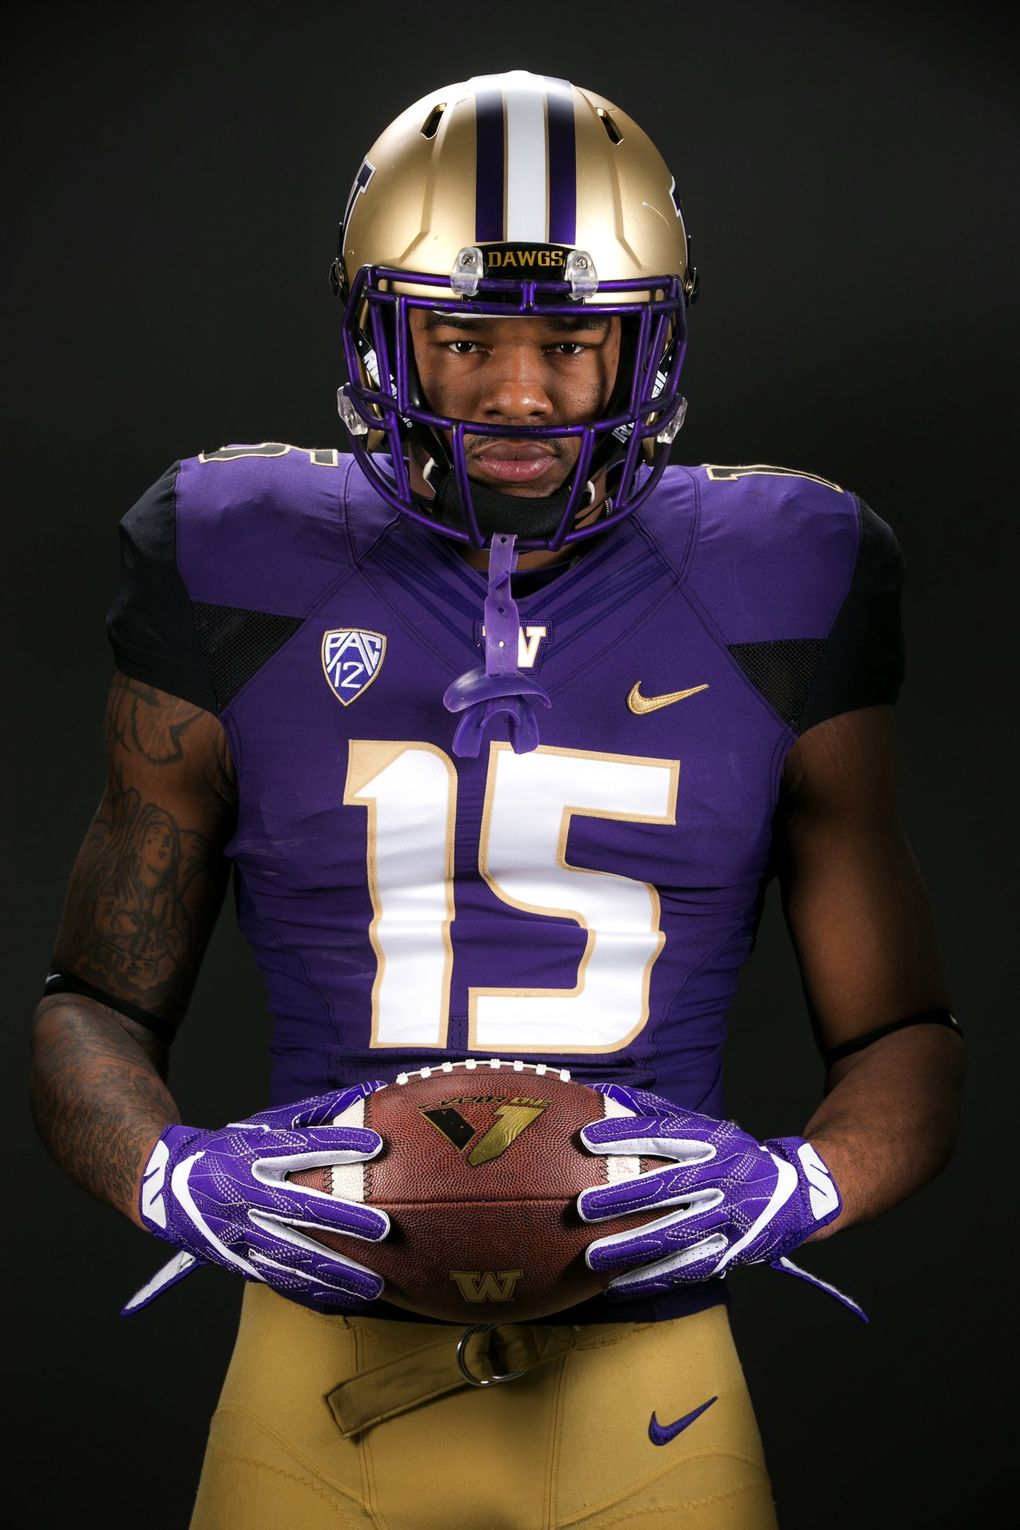 A look at the UW uniforms in 2016. Shot in Seattle Times photo studio Wednesday February 17, 2016. (Bettina Hansen / The Seattle Times)